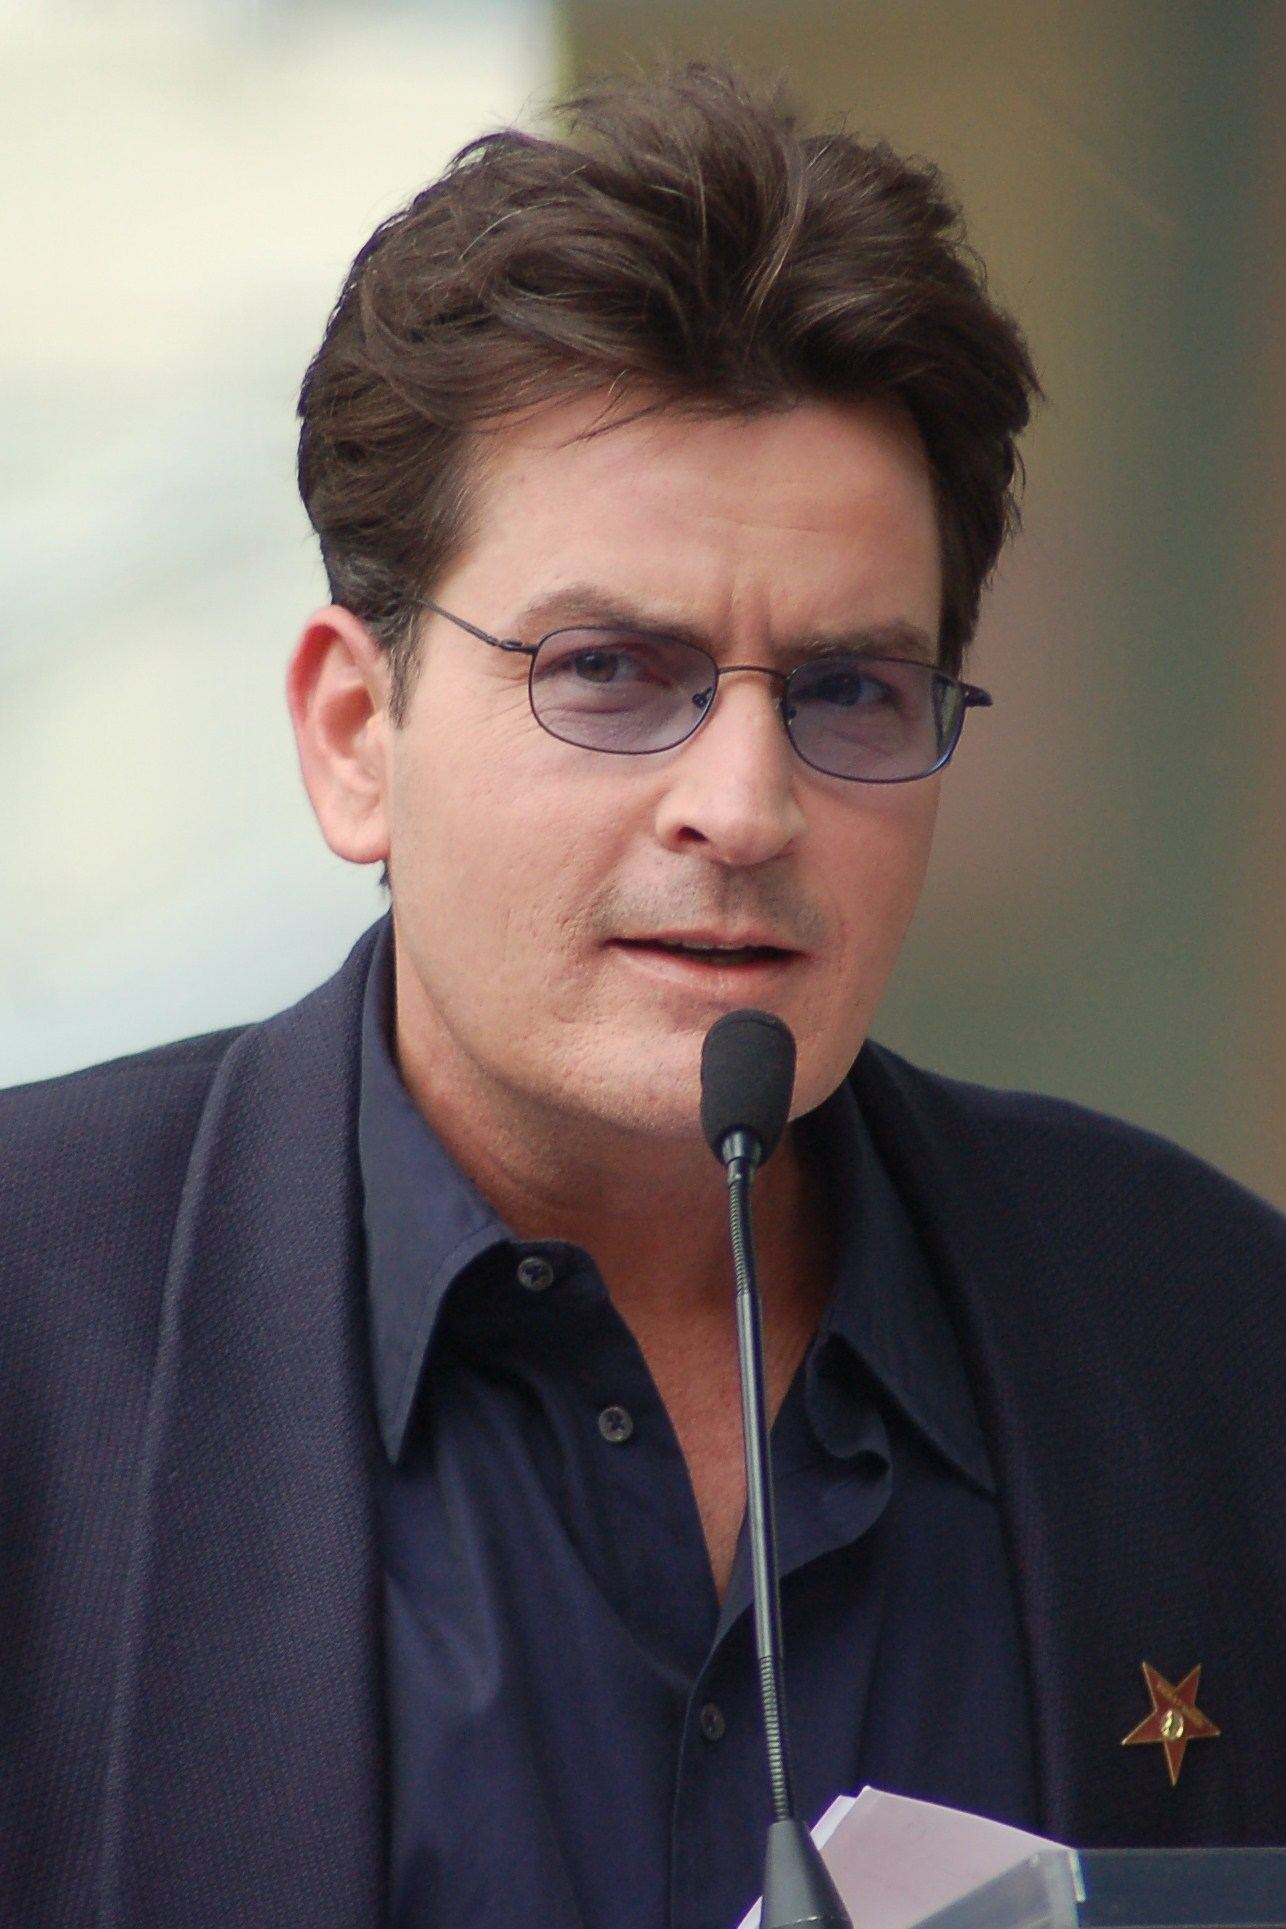 Charlie Sheen March 2009 These Celebrities Were Expelled From School. The Reasons Why Will Surprise You!